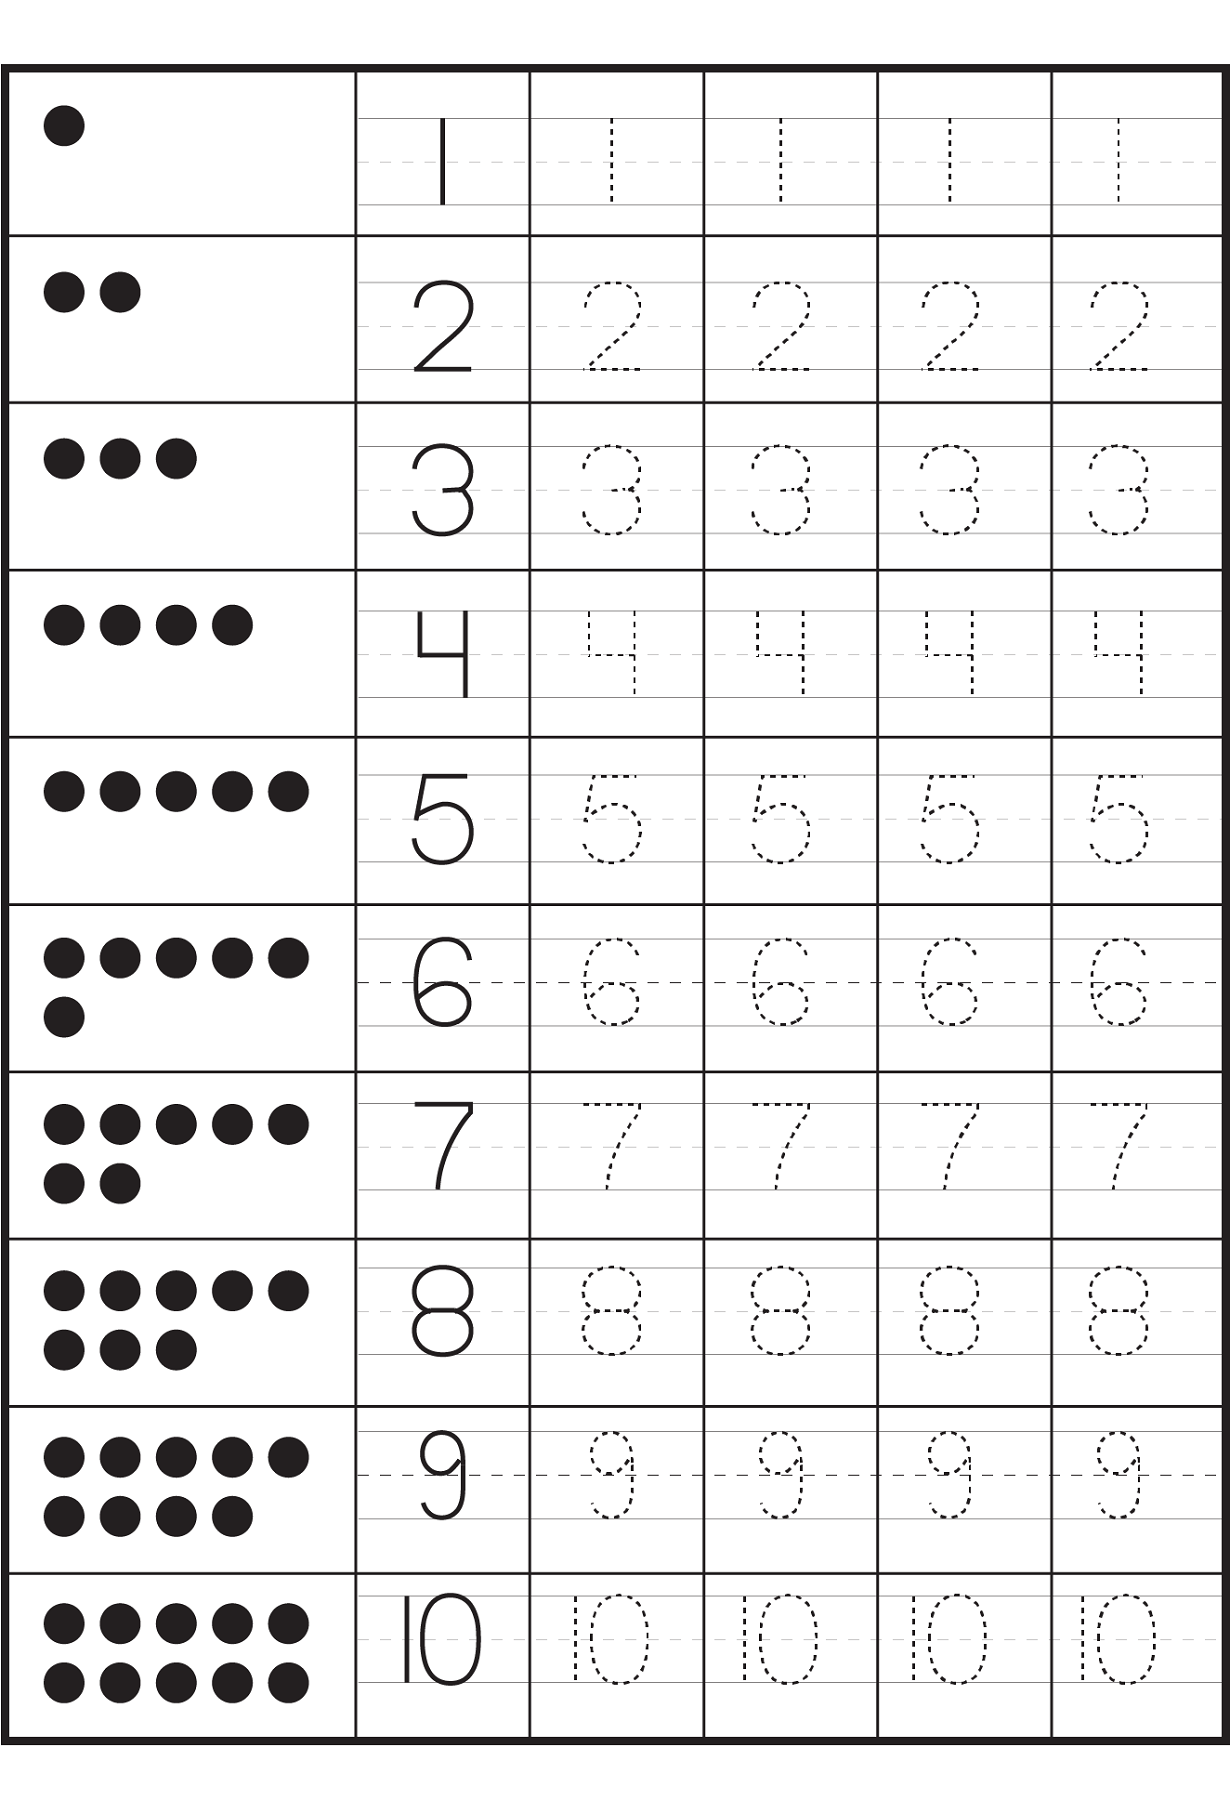 Lined Quarter Inch Template V besides Printing Letters Kindergarten And Alphabet Worksheet Math Free Printable Worksheets Practice For Kids Tracing Preschoolers Alphabets Learning X besides Number Worksheets For Preschool furthermore Capture also Teachingresource Howmanyeyesaliencountingworksheet. on writing blank worksheet templates